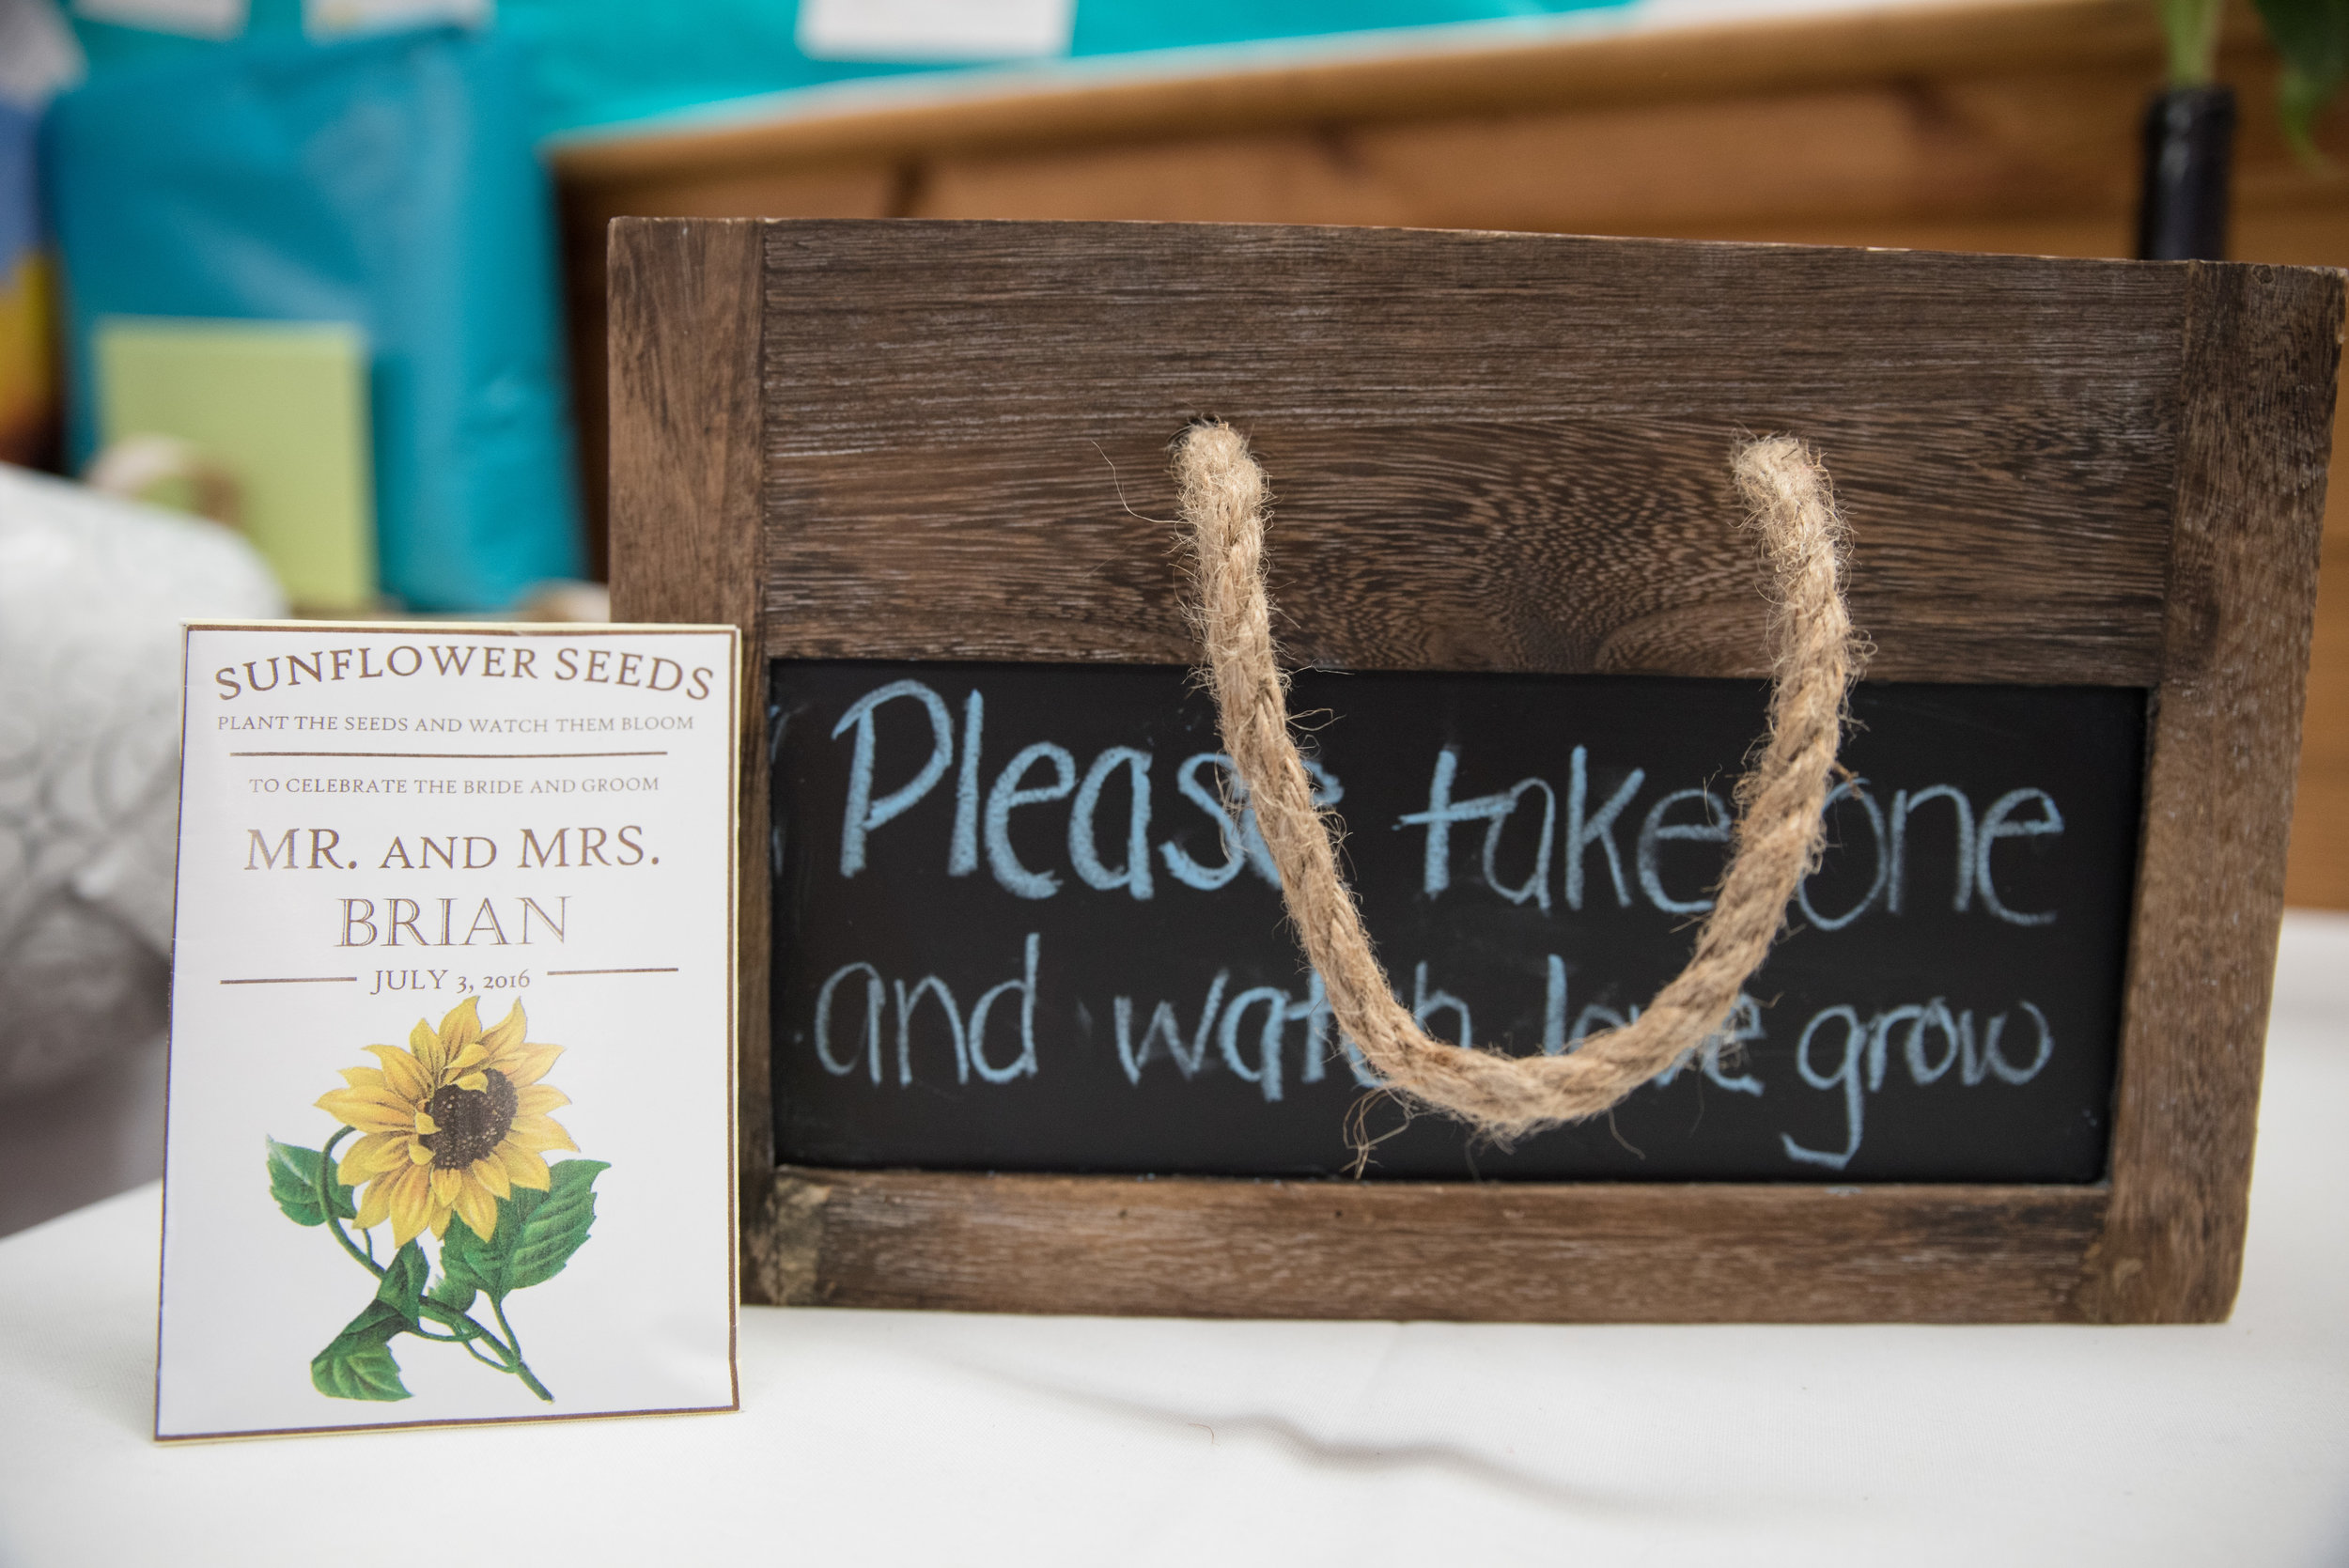 Lisa and Nate, weddings, Fall, Autumn, marriage, nature, October, Brian, Latham, wedding photography, rustic, woodsy, woods, DIY, Connecticut, Massachusetts, lake, sunflower, pond, yellow, simple, gorgeous, blue, reception